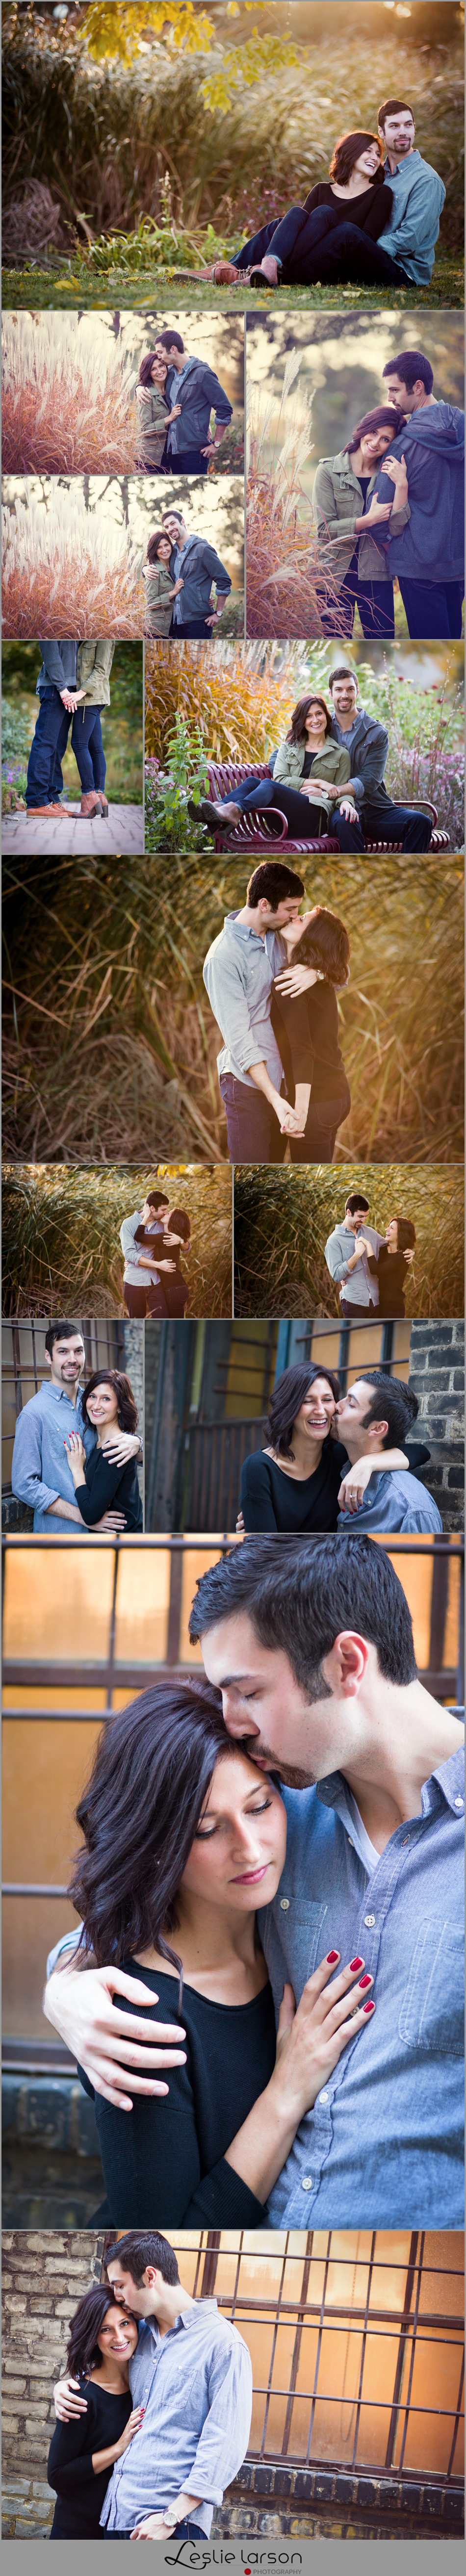 Ashley engagement session loring park minneapolis